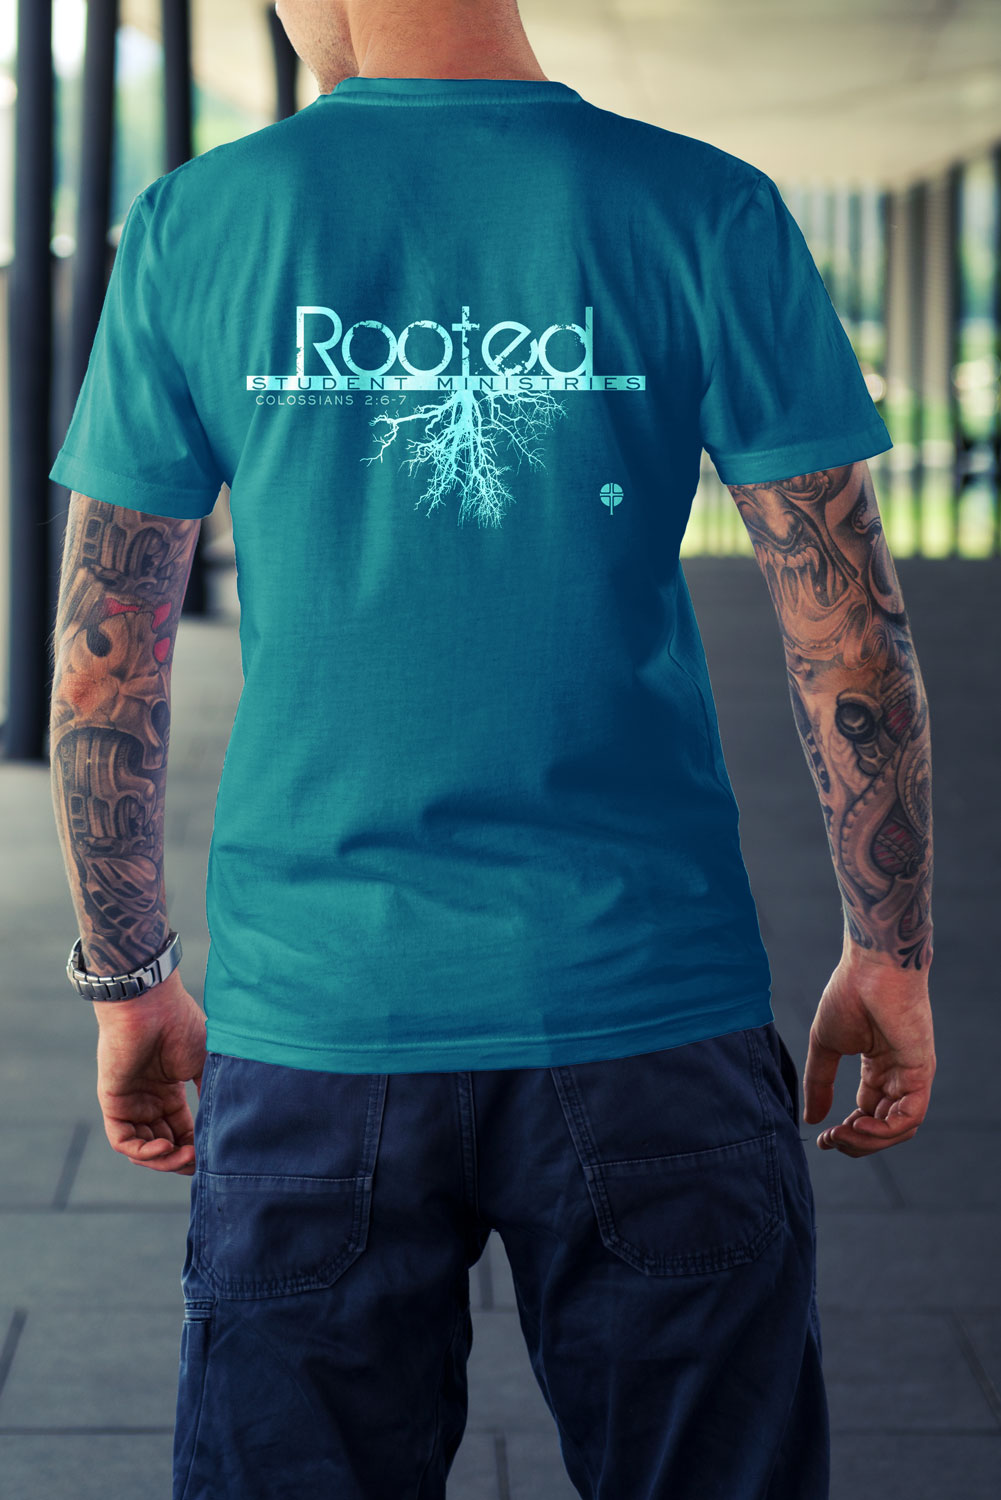 t shirt design by red kanvas for rooted student ministries t shirt design - Church T Shirt Design Ideas